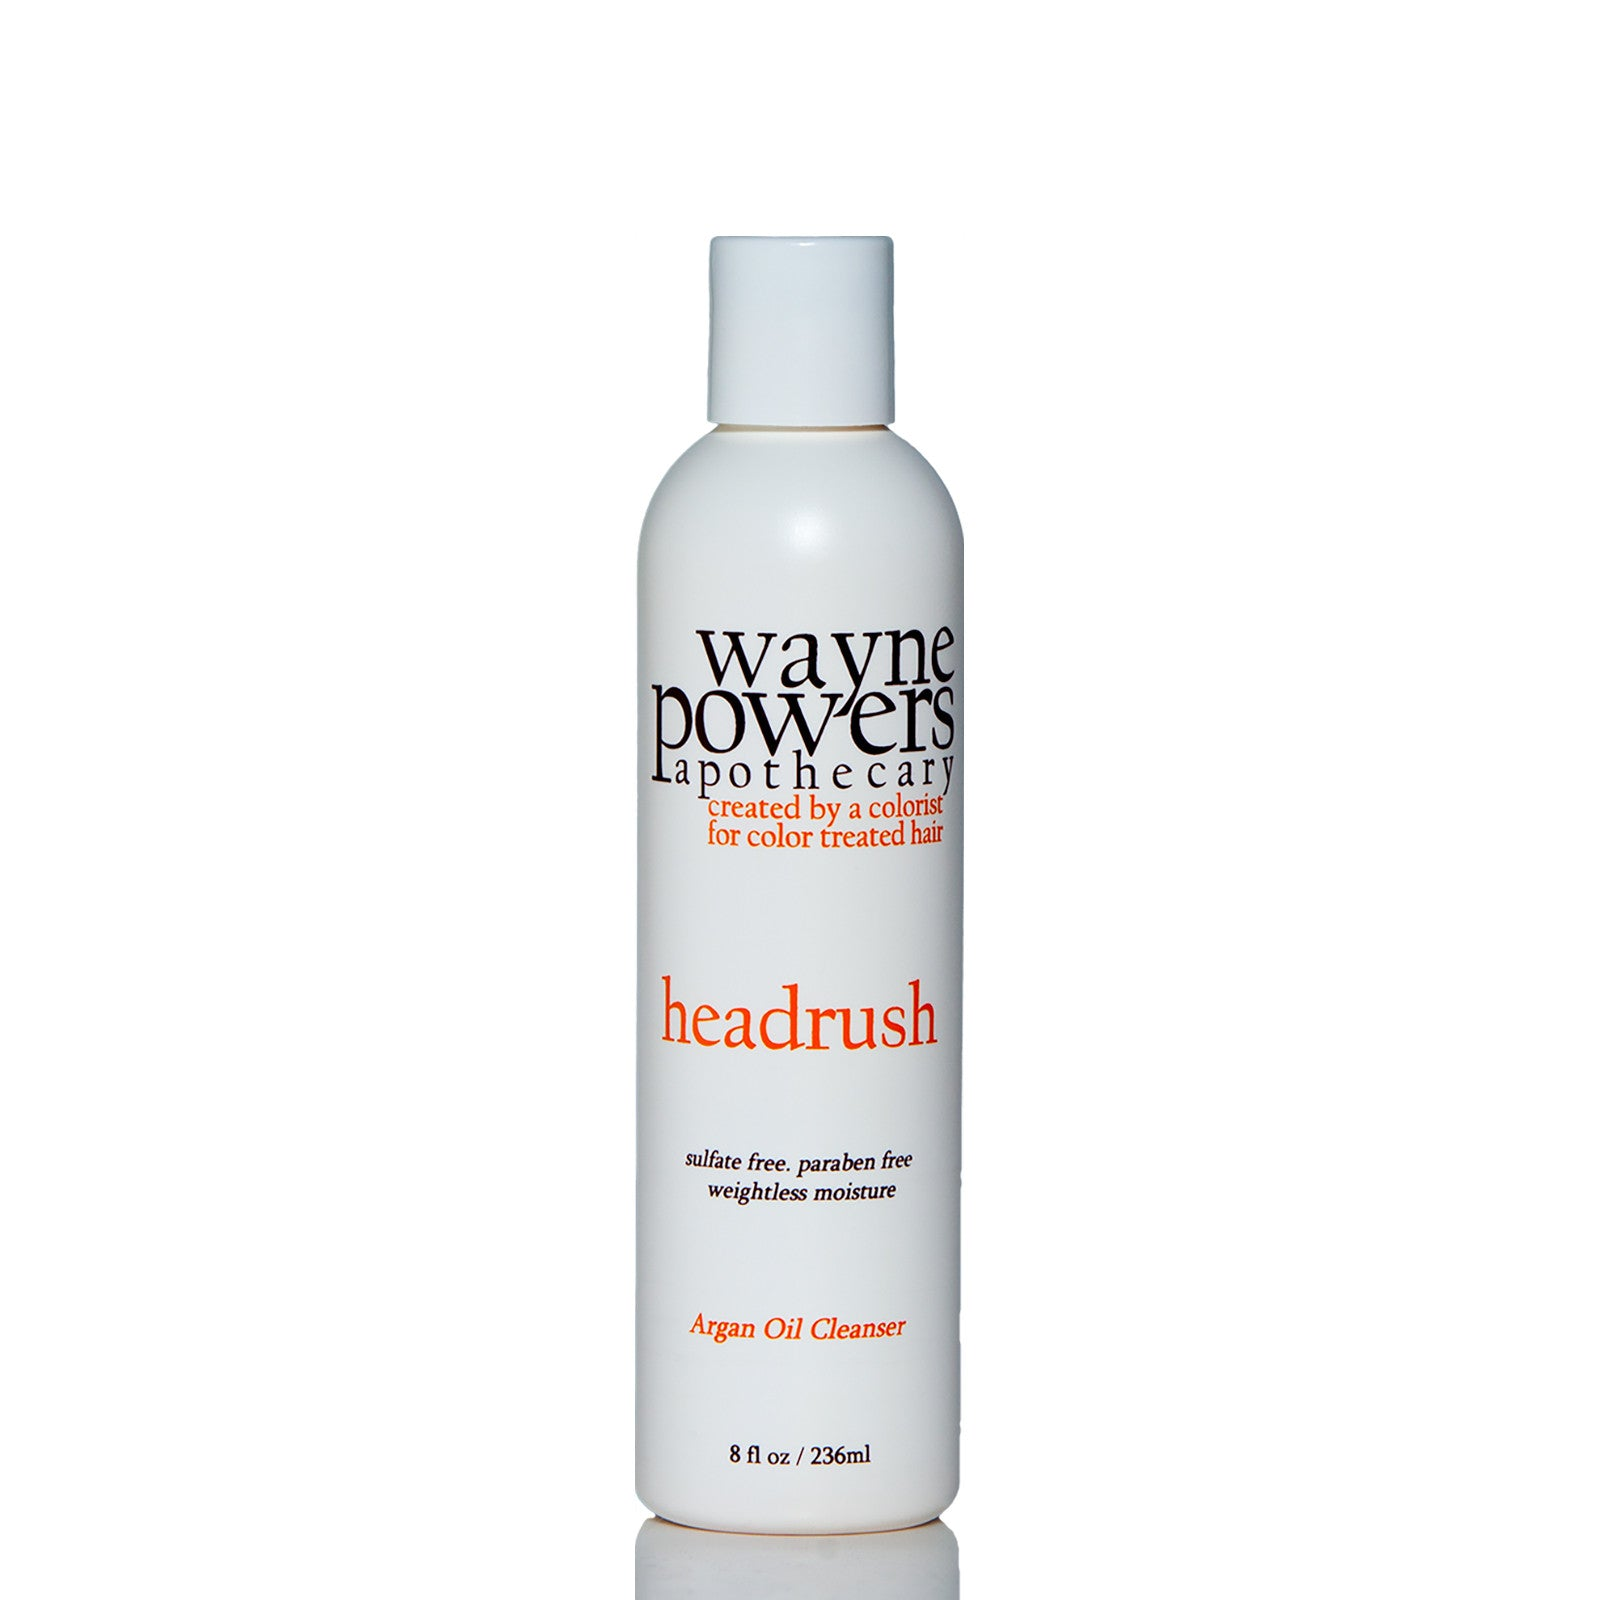 Head Rush Argan Oil Cleanser by Wayne Powers Apothecary